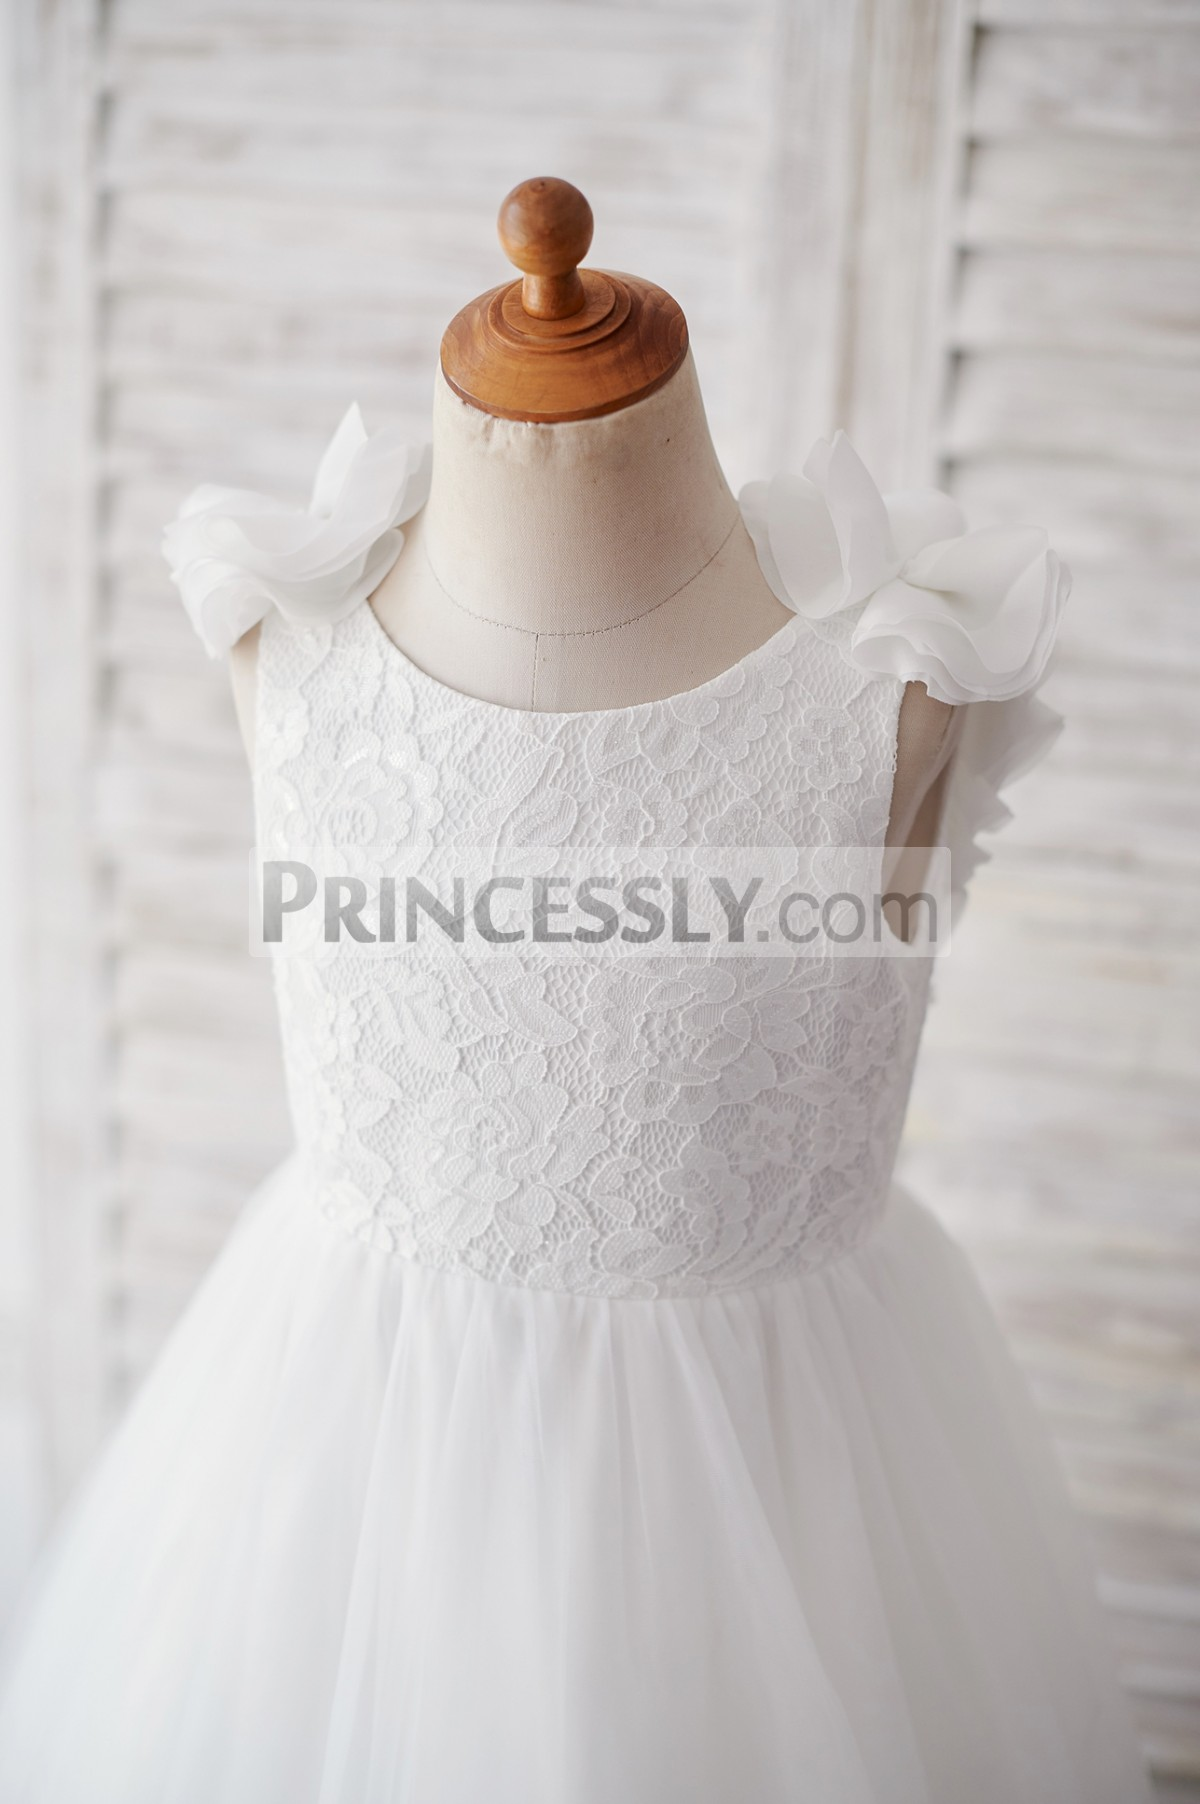 Ivory lace bodice in sleeveless